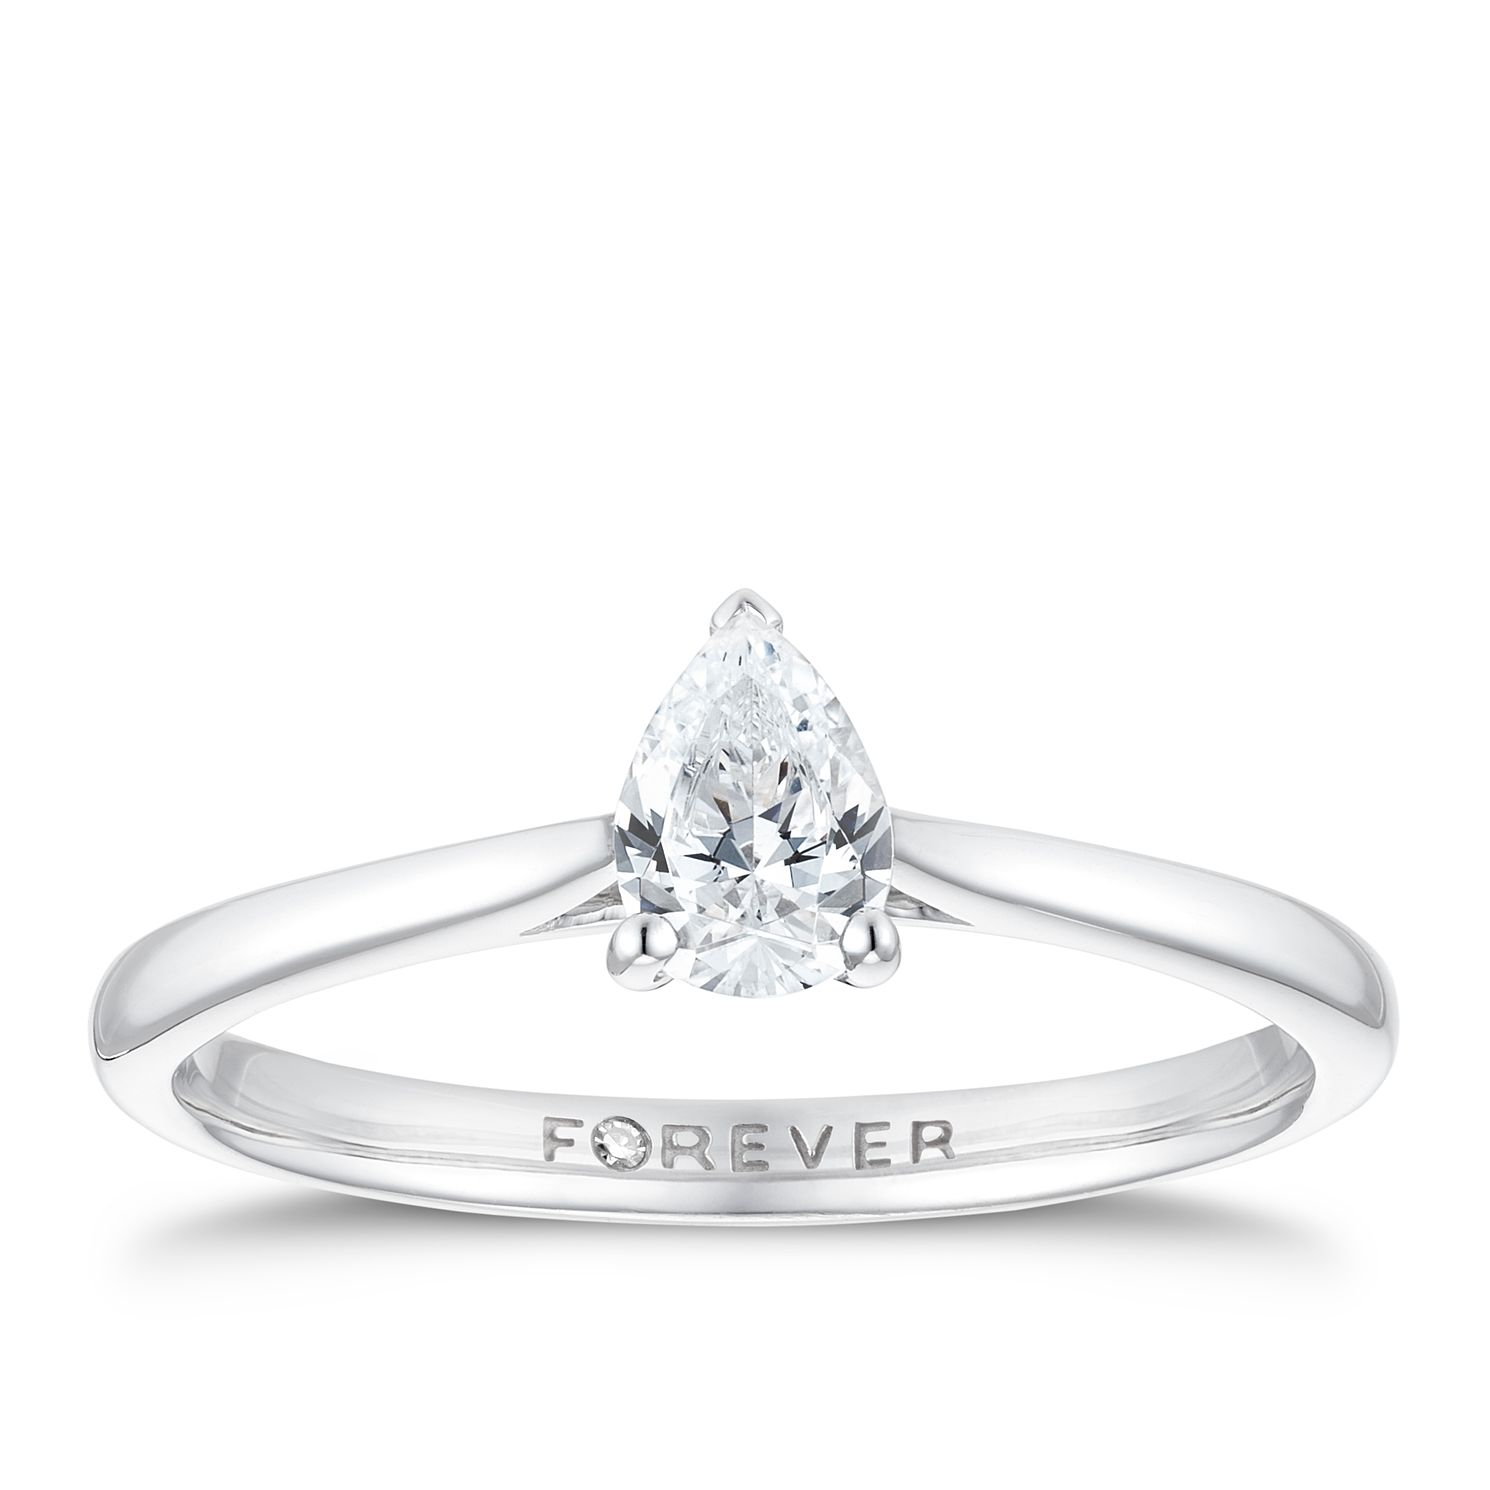 18ct White Gold 3/10ct Pear Forever Diamond Ring - Product number 3386511